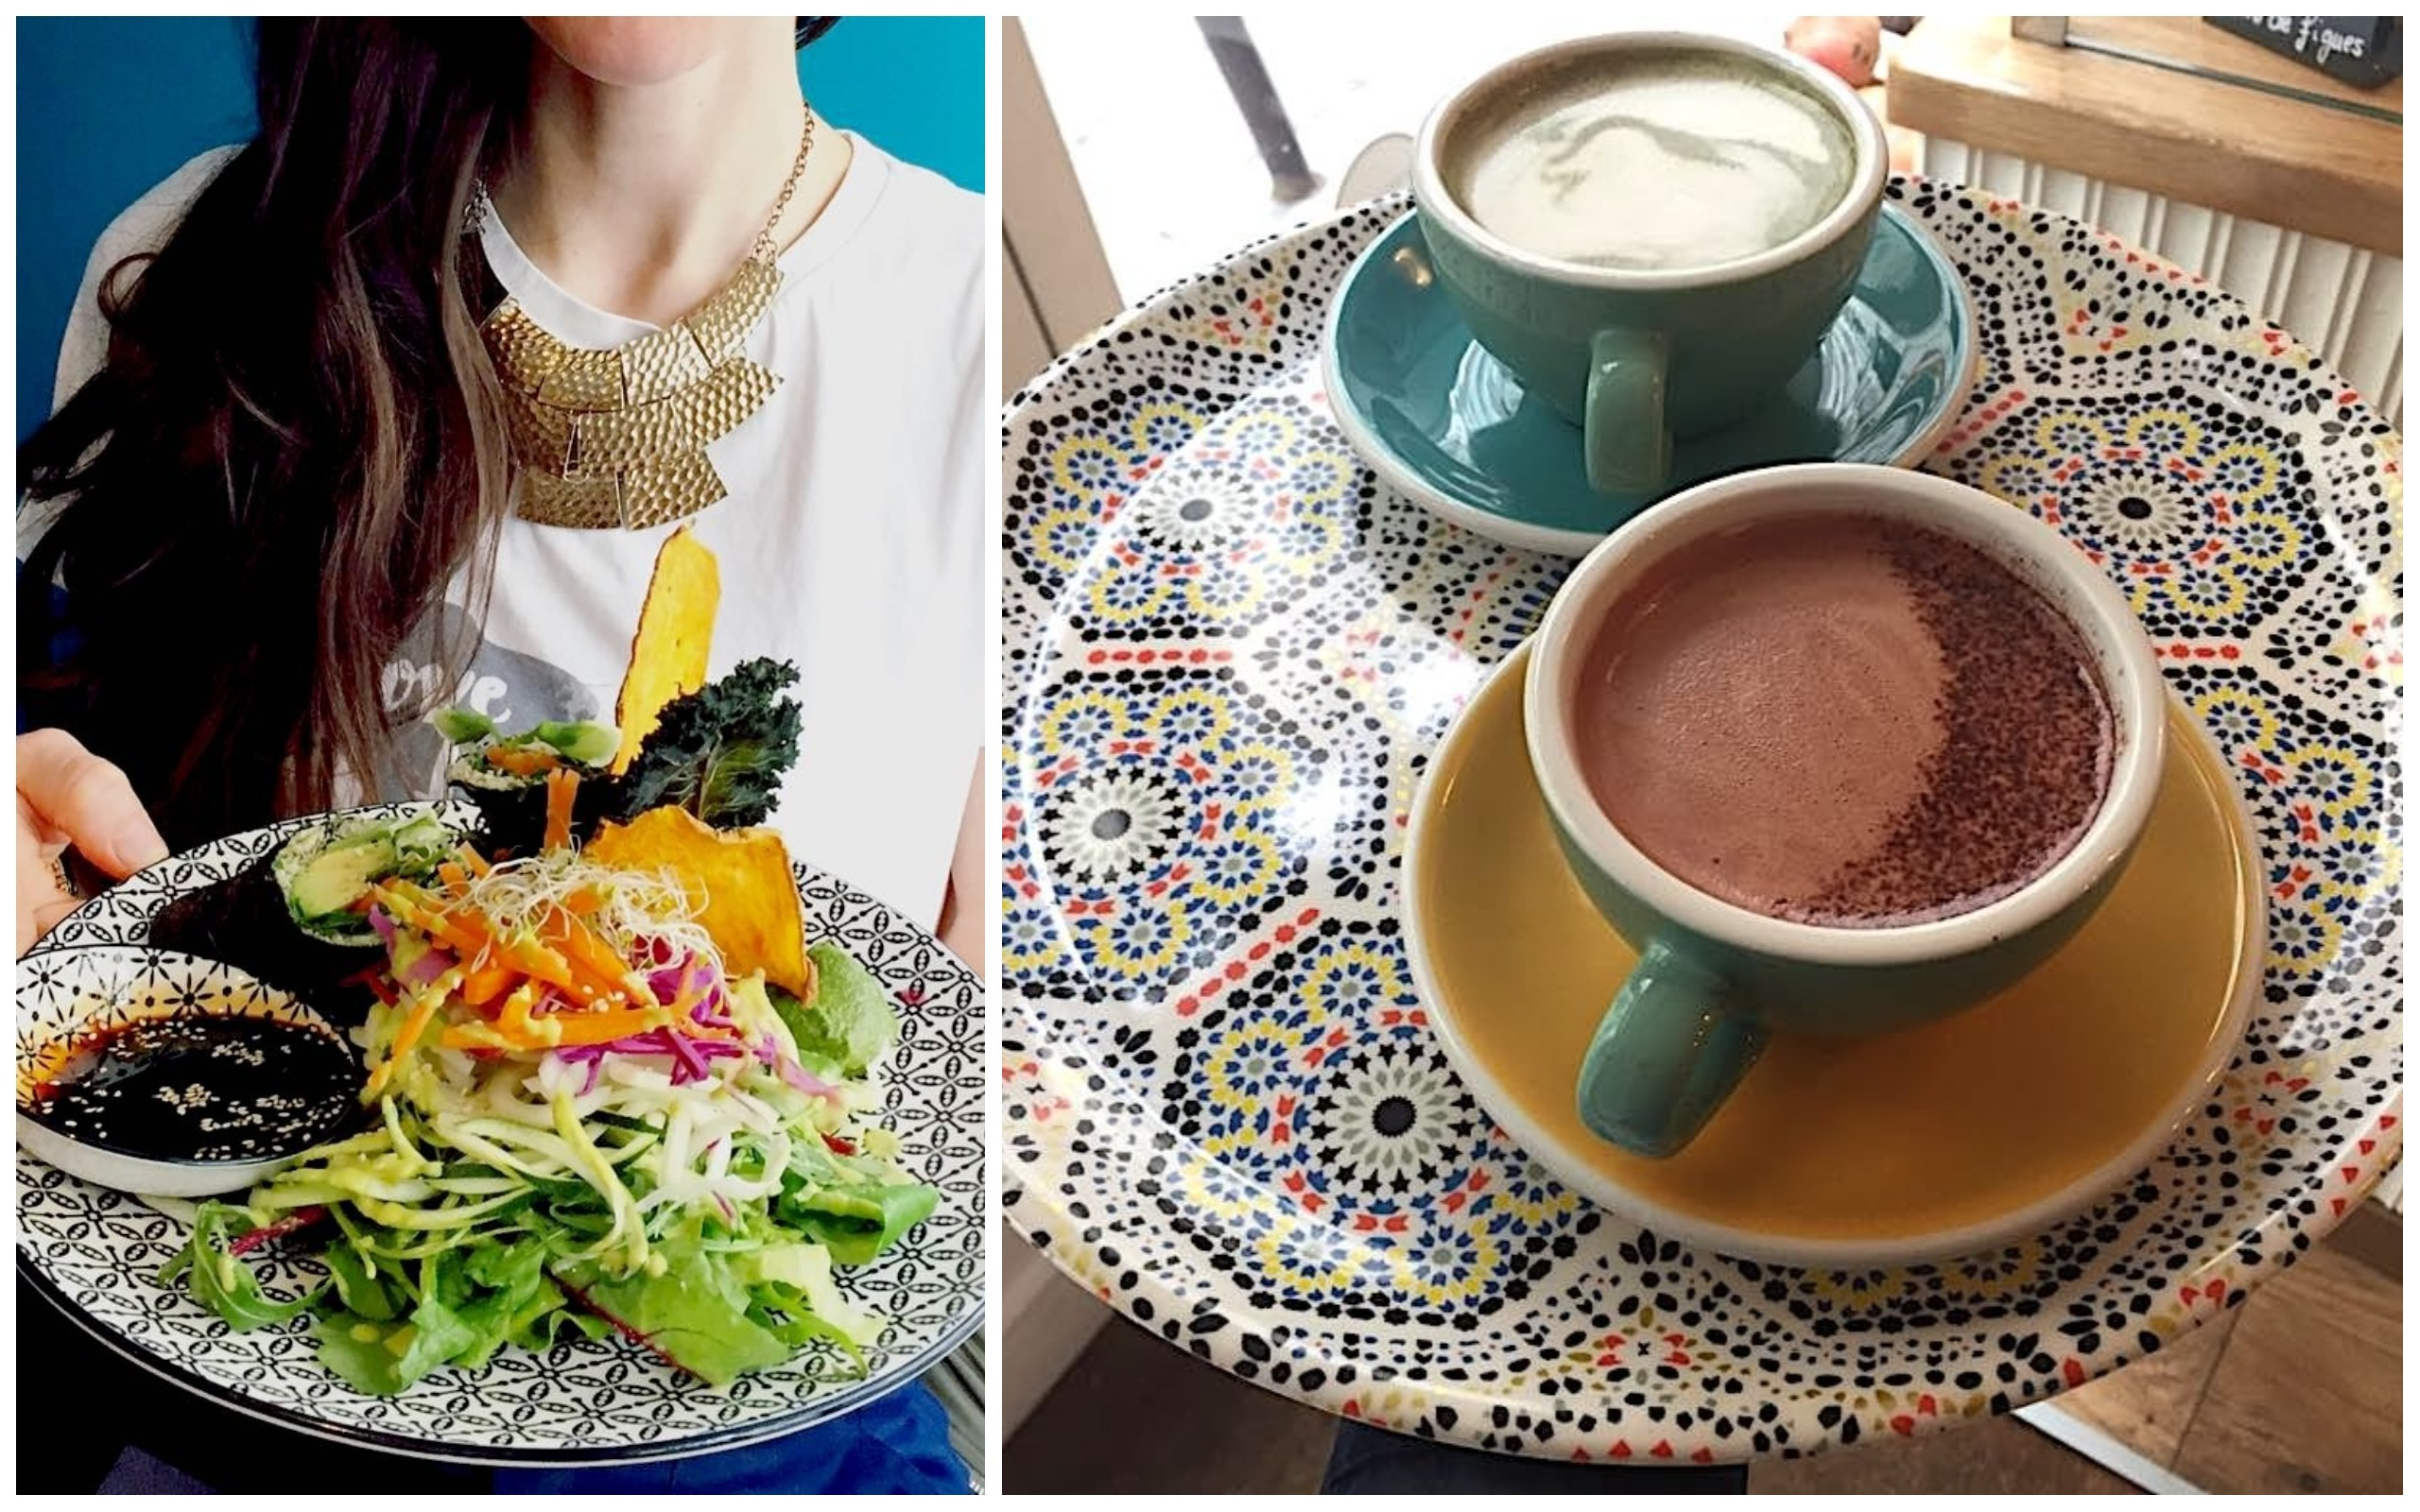 A fresh gluten-free salad at a restaurant in Paris on a mosaic plate being held by a girl (left). Gluten-free hot chocolate and coffee on a mosaic tray (right).